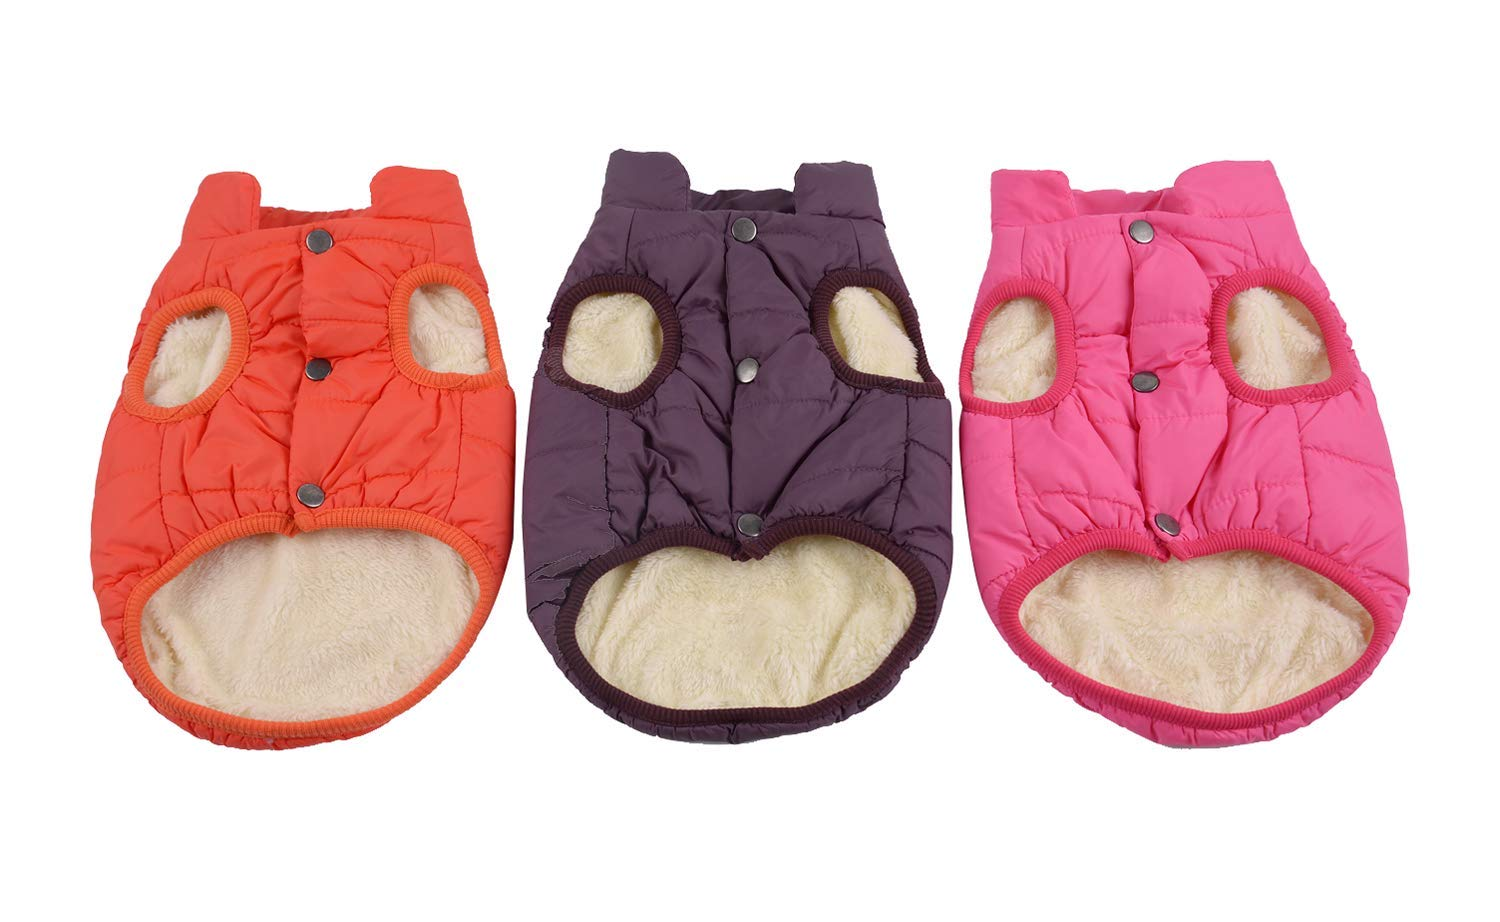 Kismaple Dog Cosy Fleece Jacket Winter Lined Coat Clothes Warm Padded for Small Medium Large Dogs 7